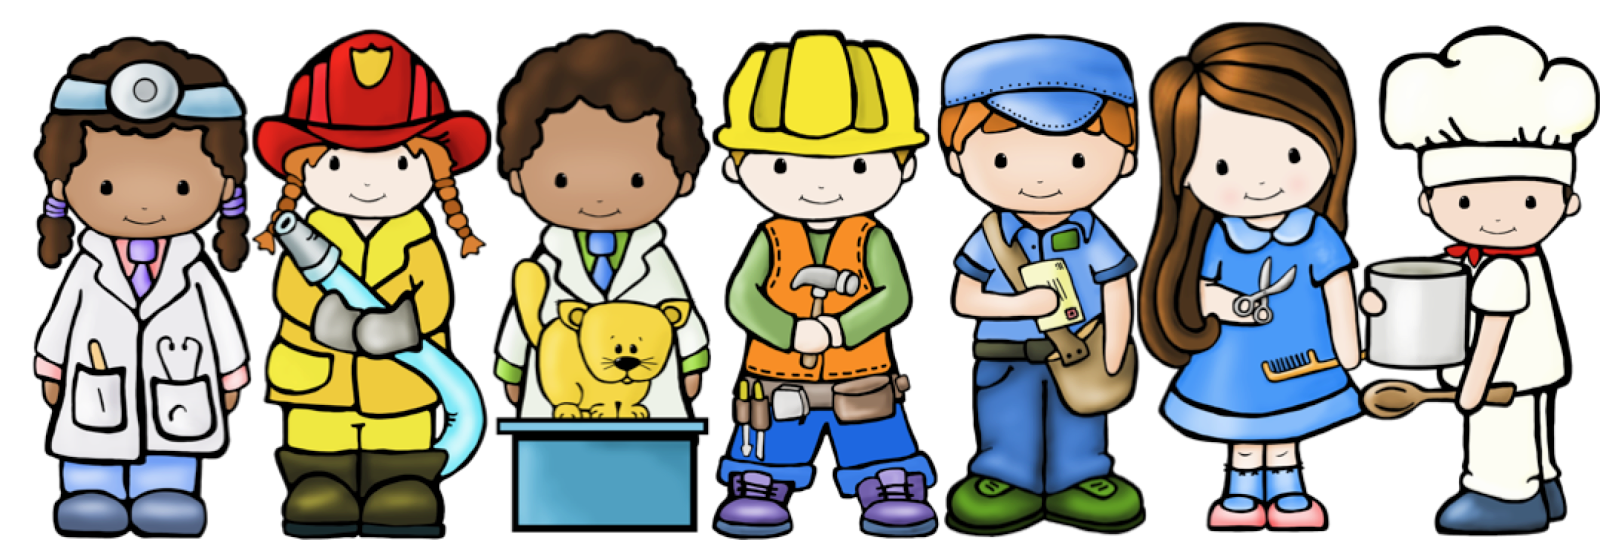 Community Helpers Clipart For Kids.